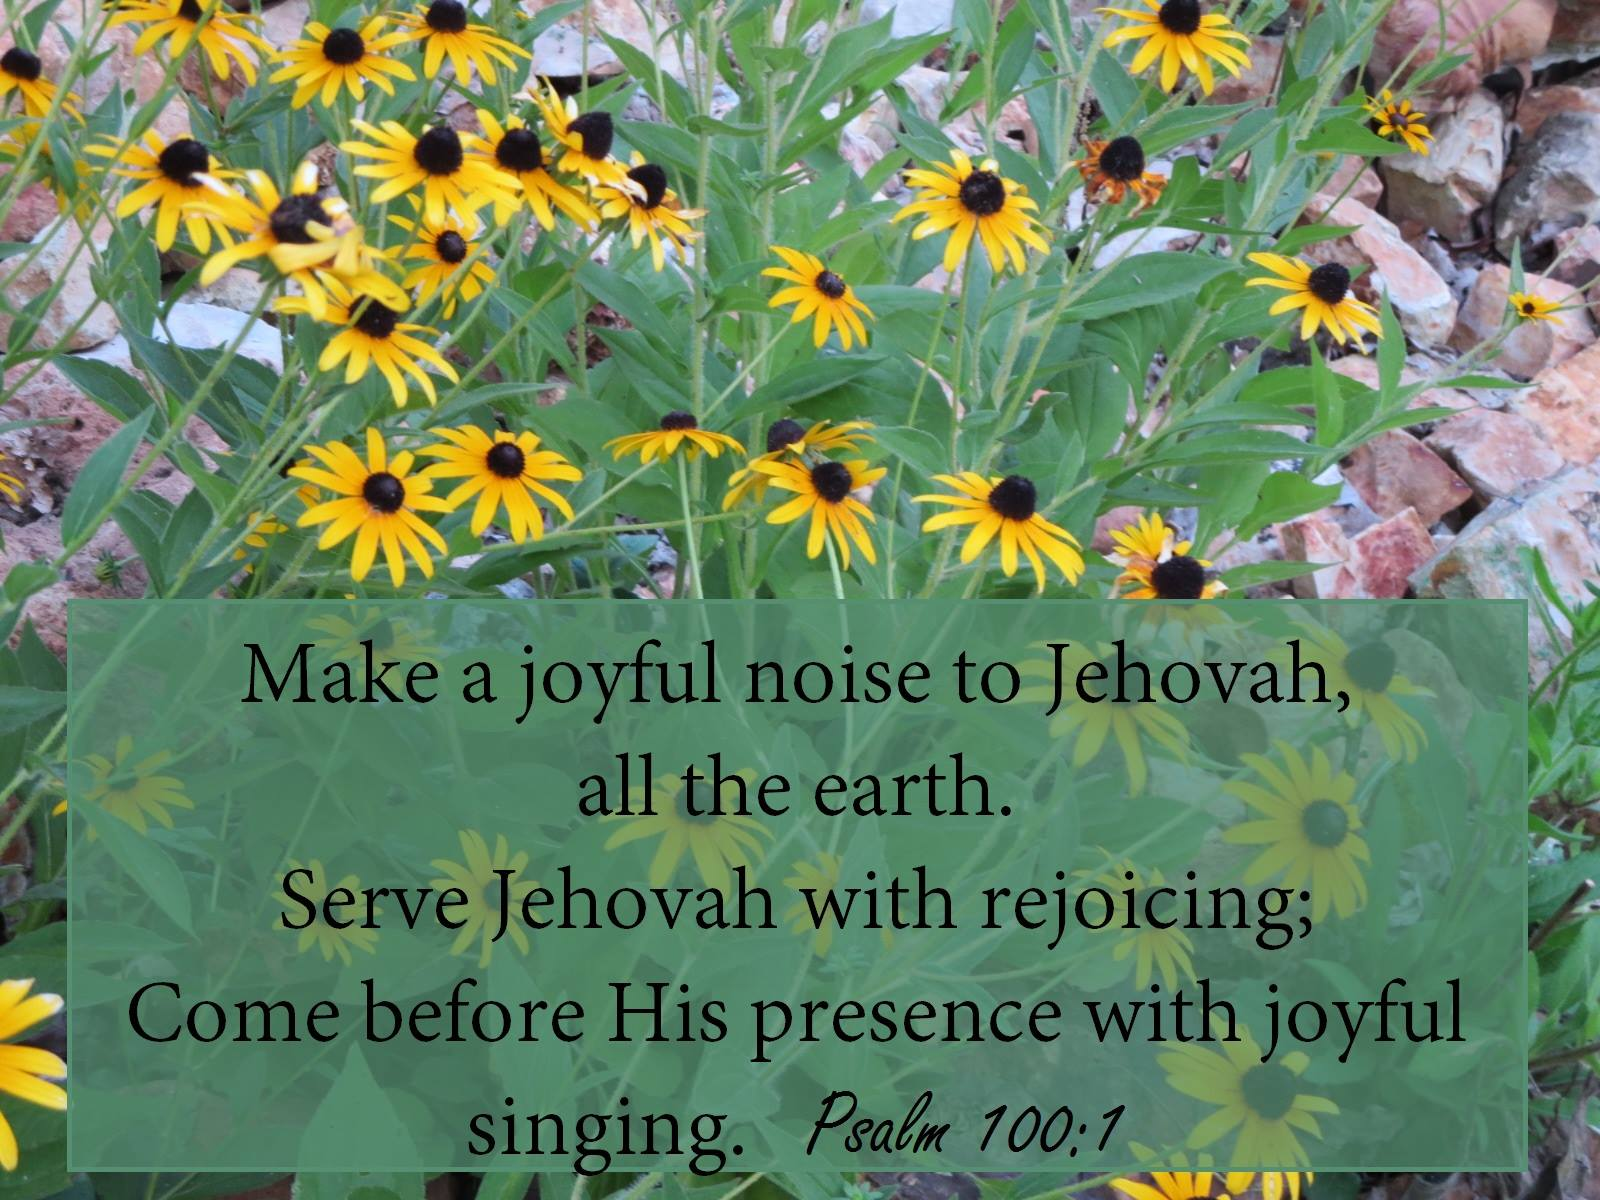 Psalm 100:1-2 Make a joyful noise to Jehovah, all the earth. Serve Jehovah with rejoicing; Come before His presence with joyful singing.